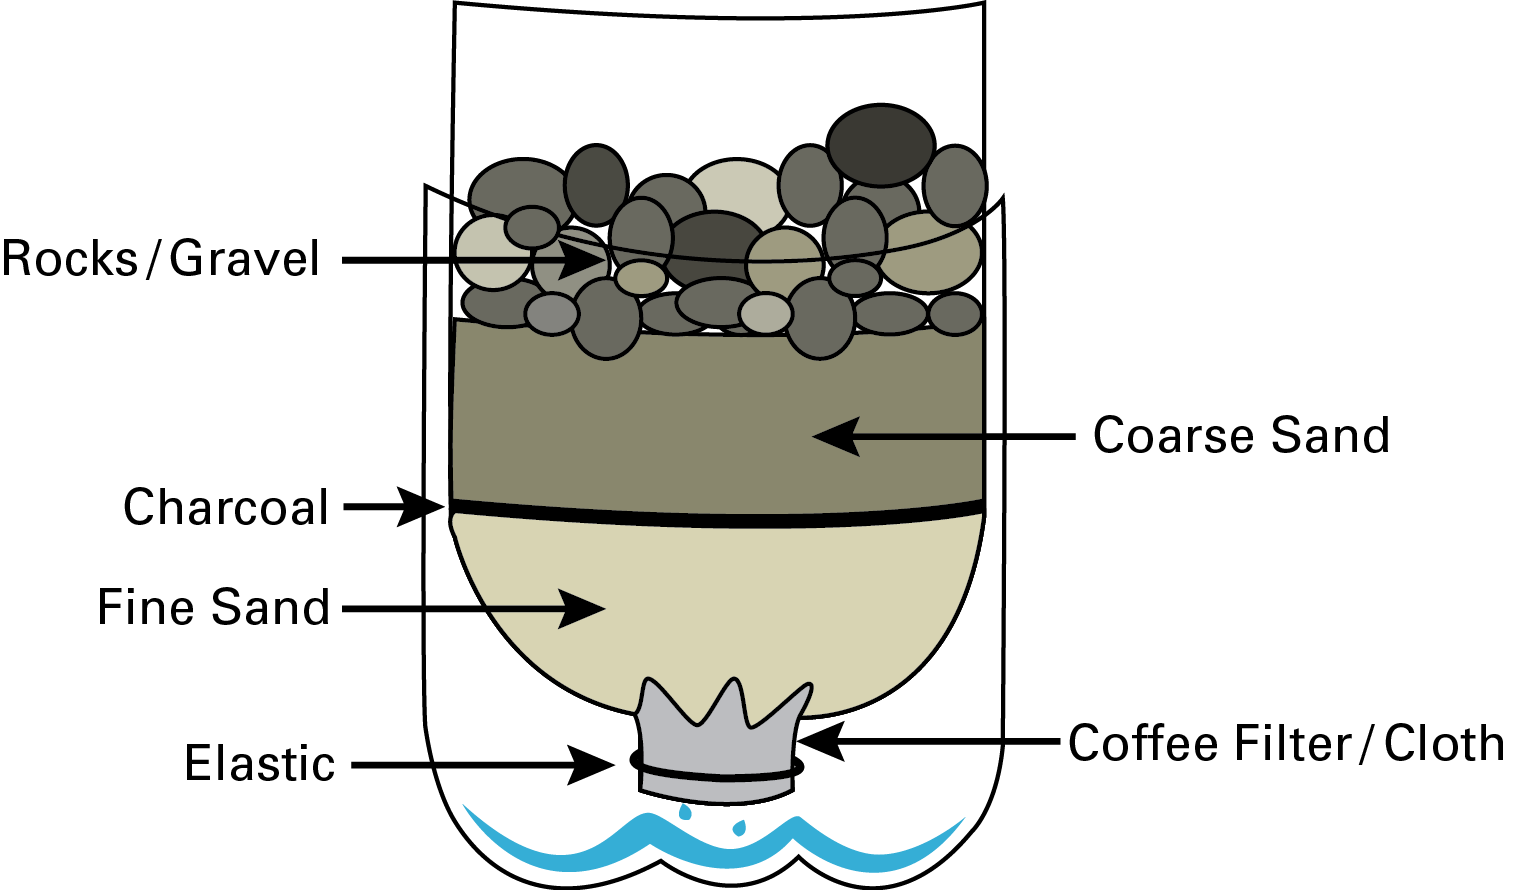 diagram Homemade Water Filters Designs on homemade water purification, homemade furniture designs, homemade lamp designs, homemade shoe designs, homemade watering system, homemade wooden tools, homemade boat designs, homemade slingshot designs, homemade water purifier, homemade filter media, homemade bars designs, homemade door designs, homemade water filters back wash, the best sand and water filters designs,